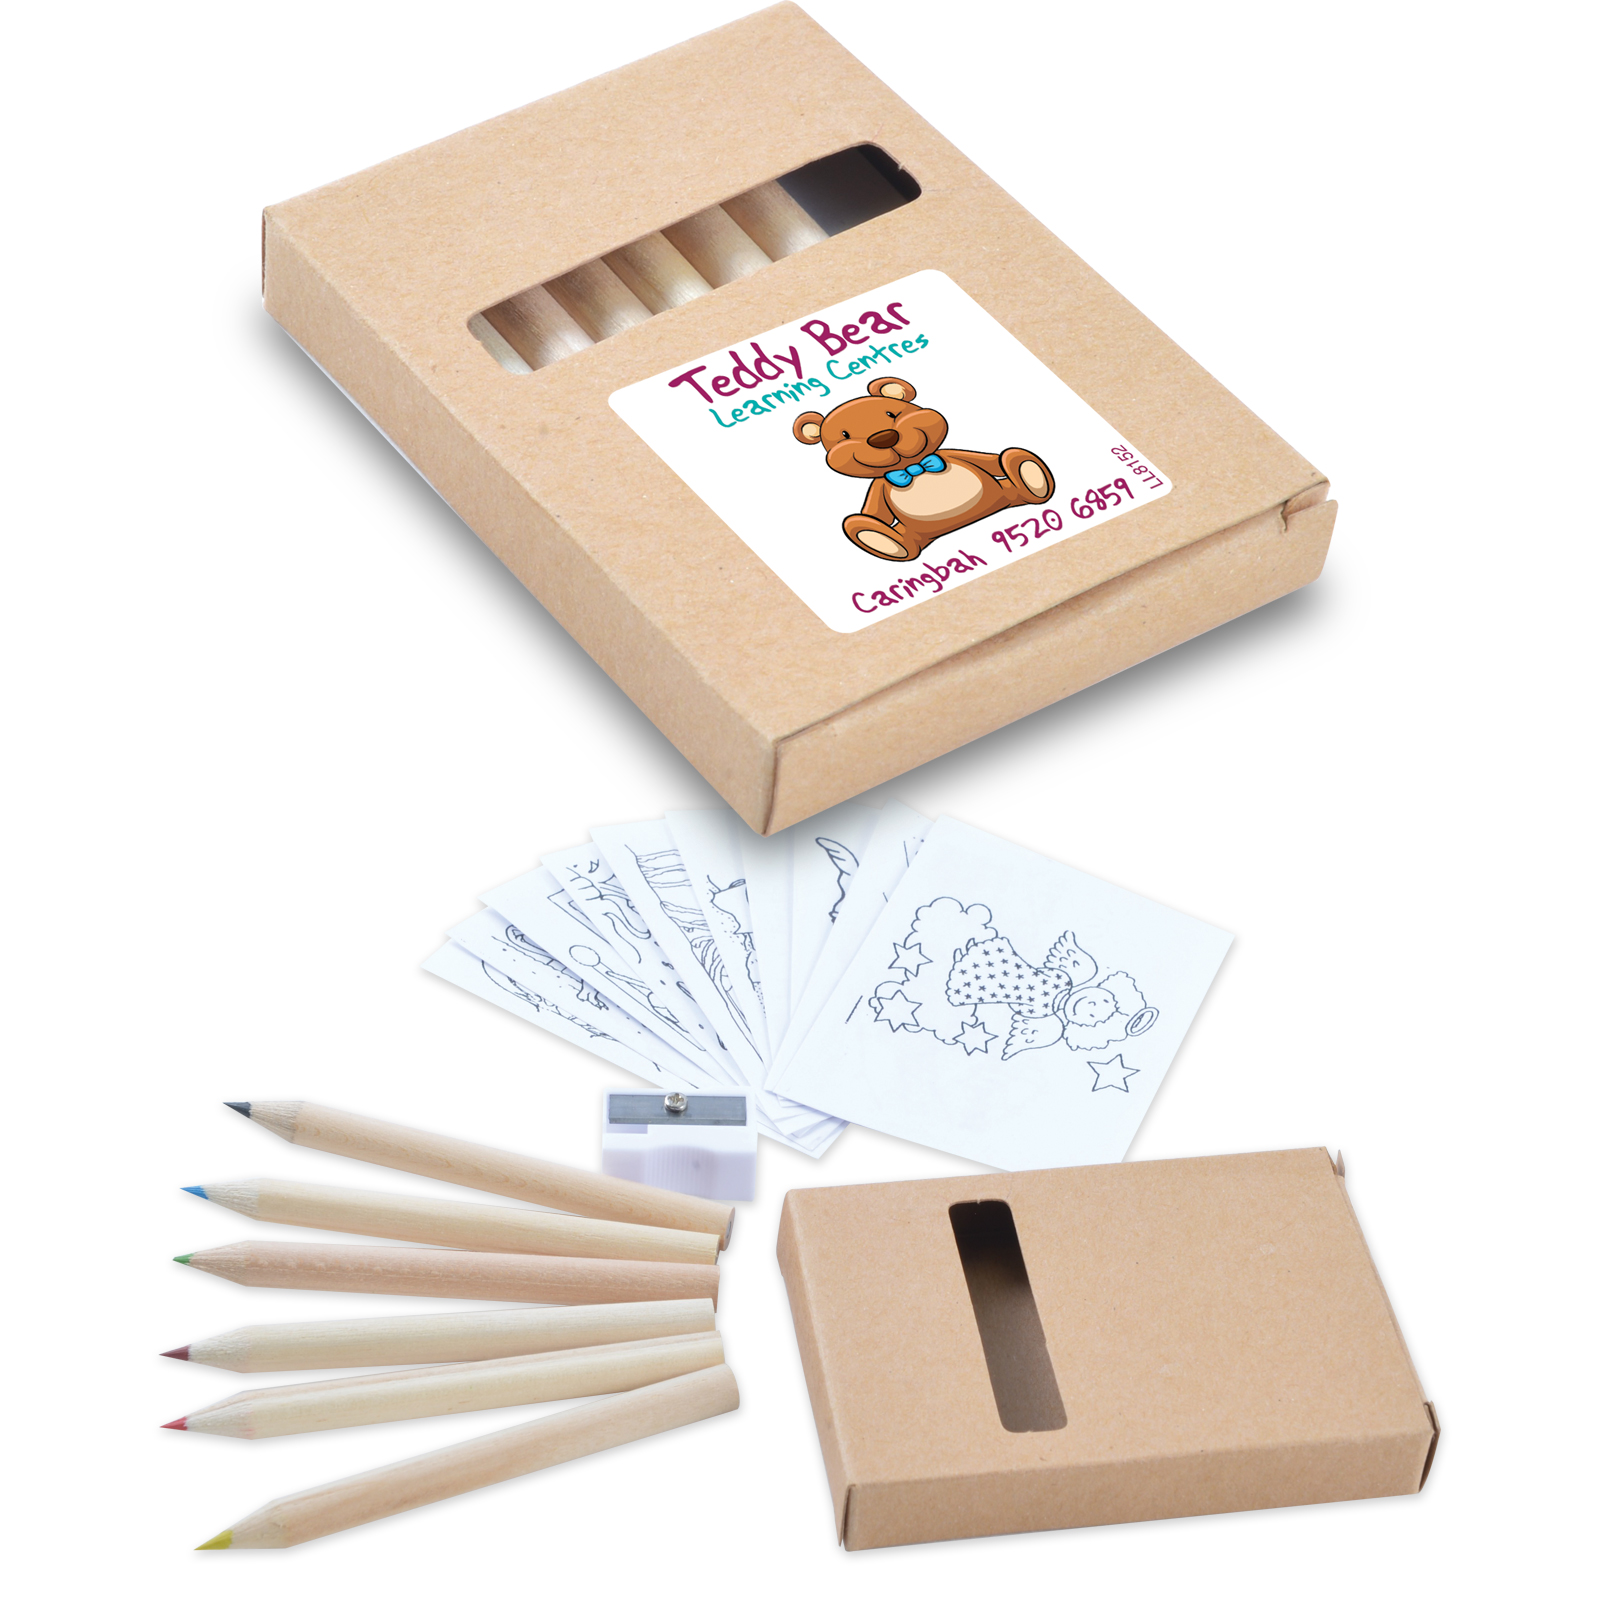 Activity Pencil Set - Includes a full colour logo, From $0.87